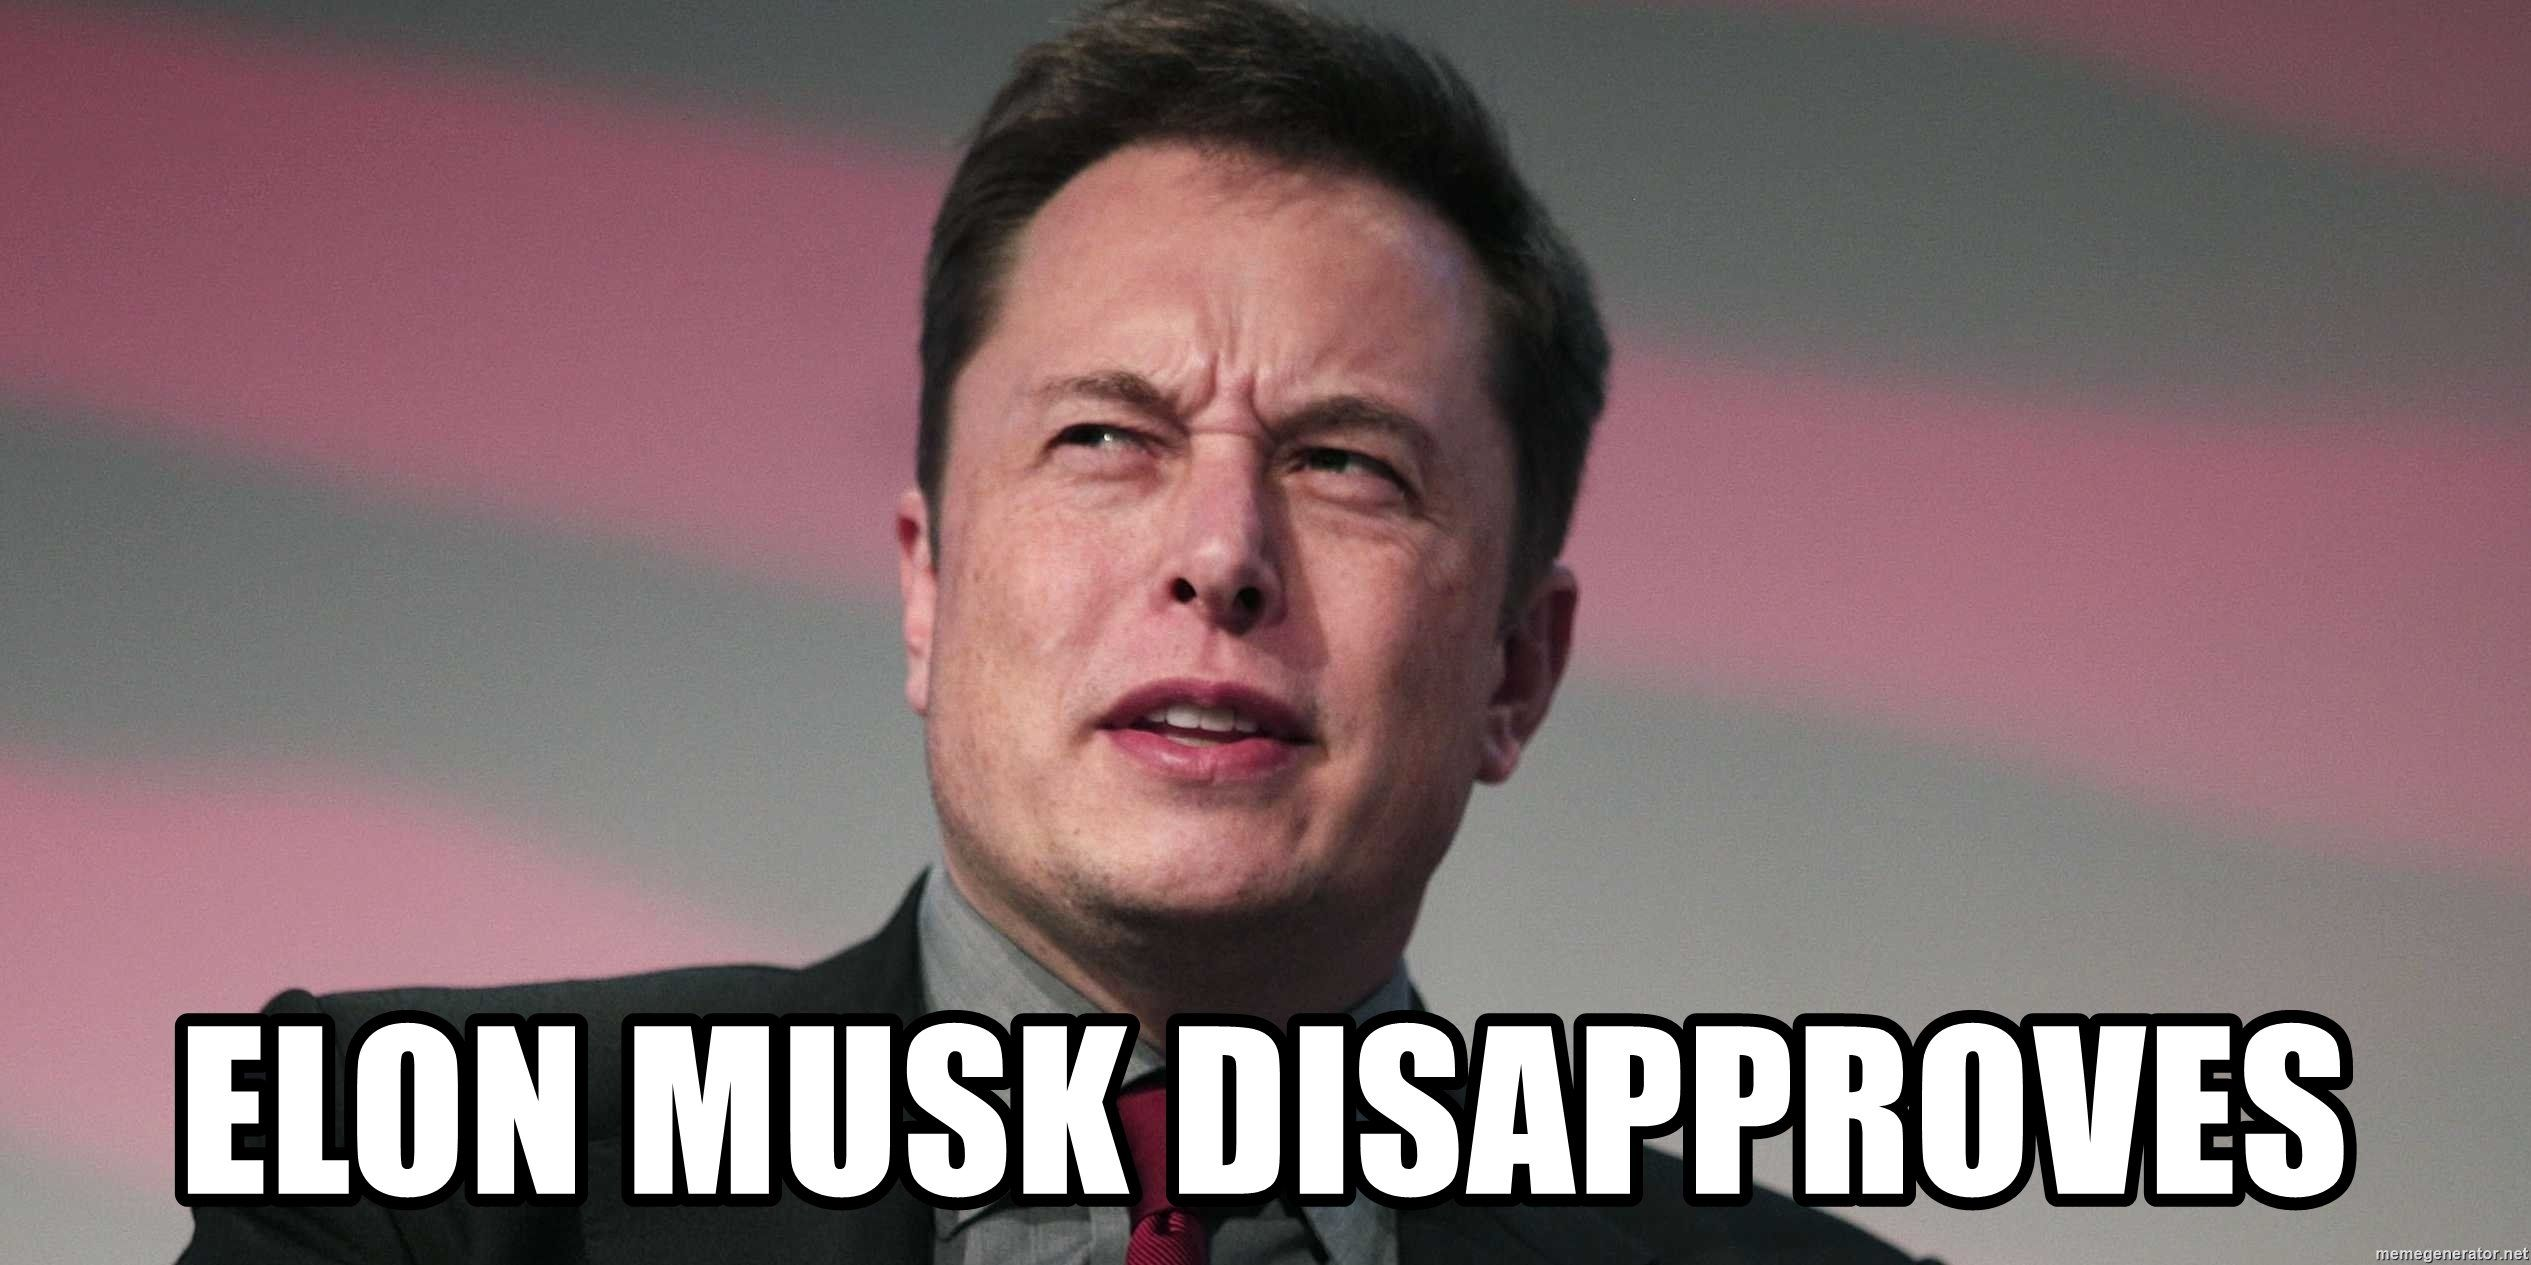 /what-are-crypto-hosted-services-and-why-does-elon-musk-hate-them-24w338g feature image